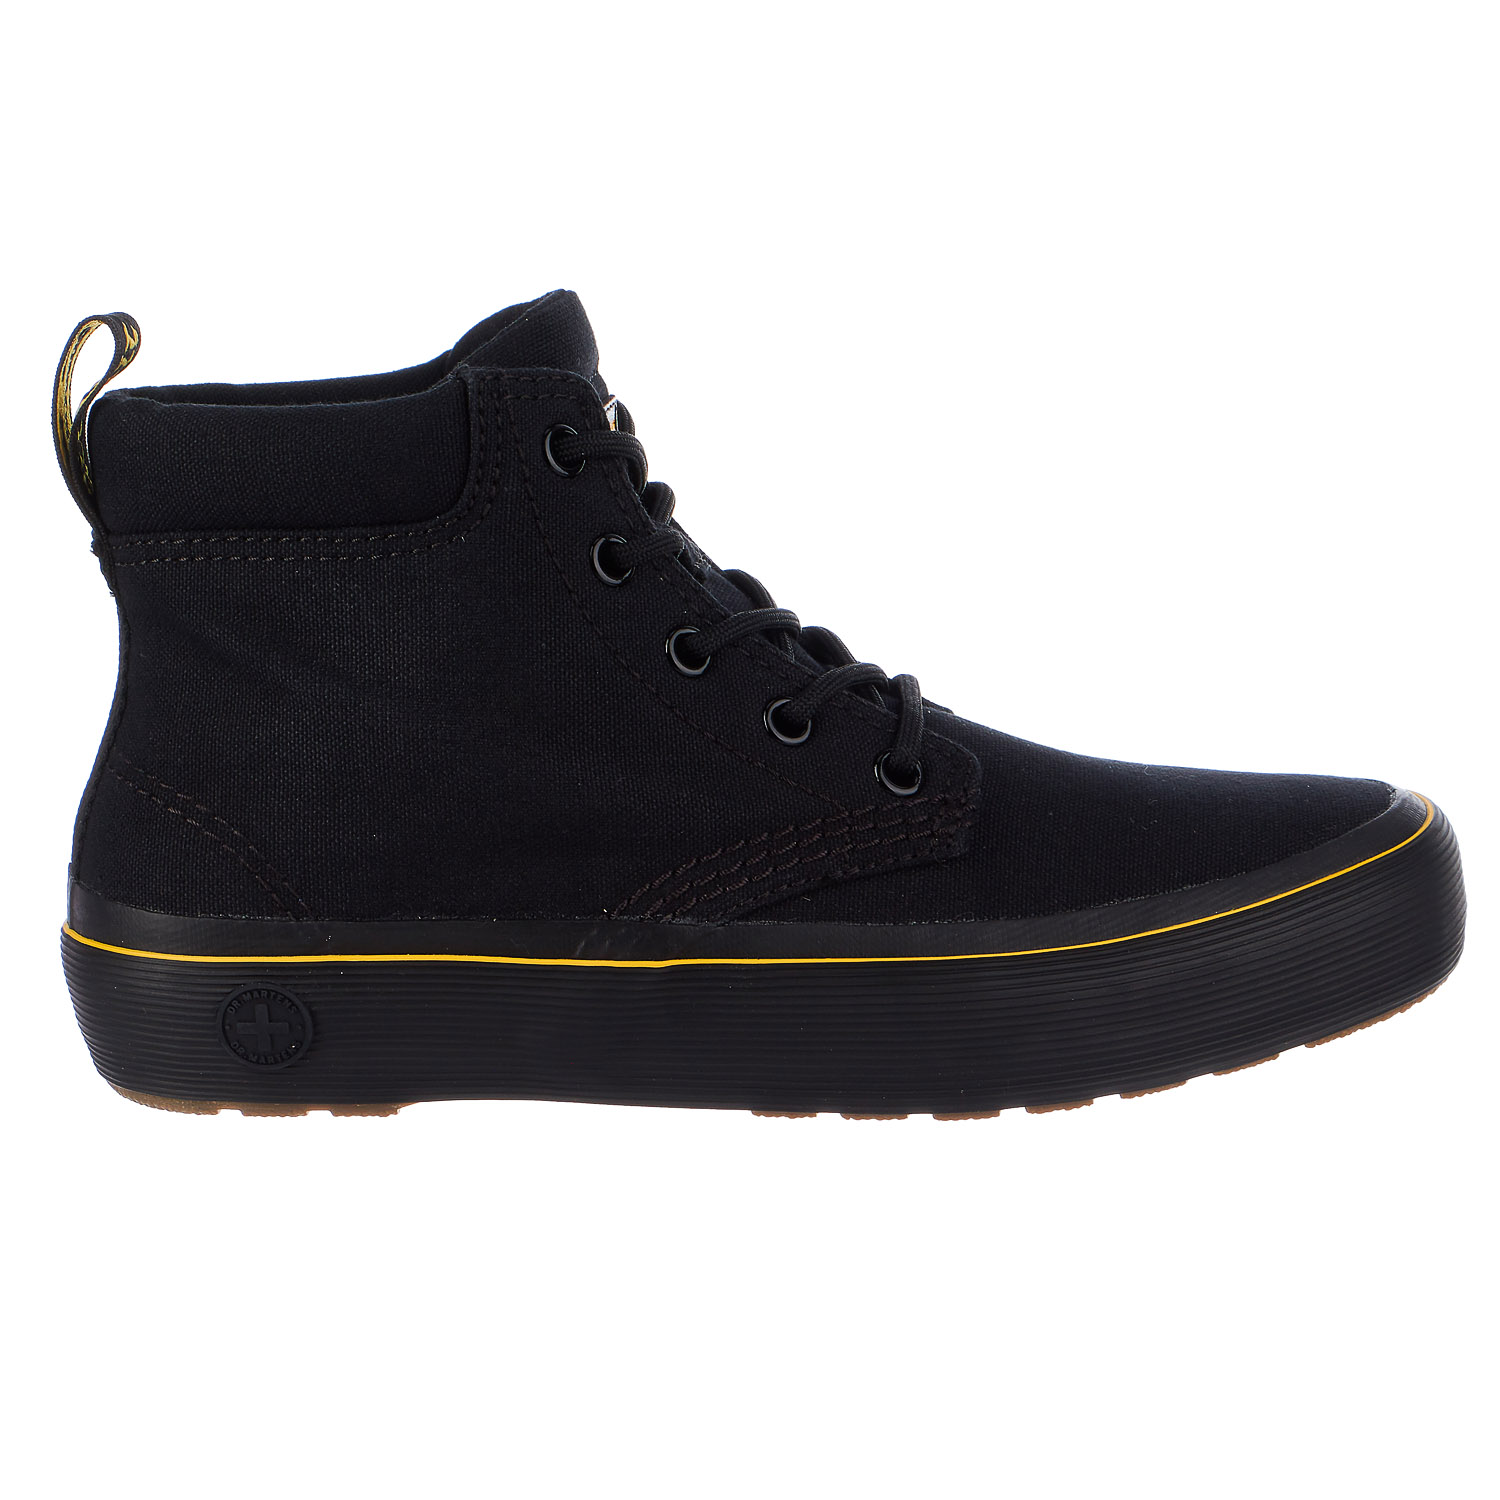 Dr. Martens Allana 5-Eye Lace Up Casual Boot Sneaker Shoe Womens by Dr. Martens